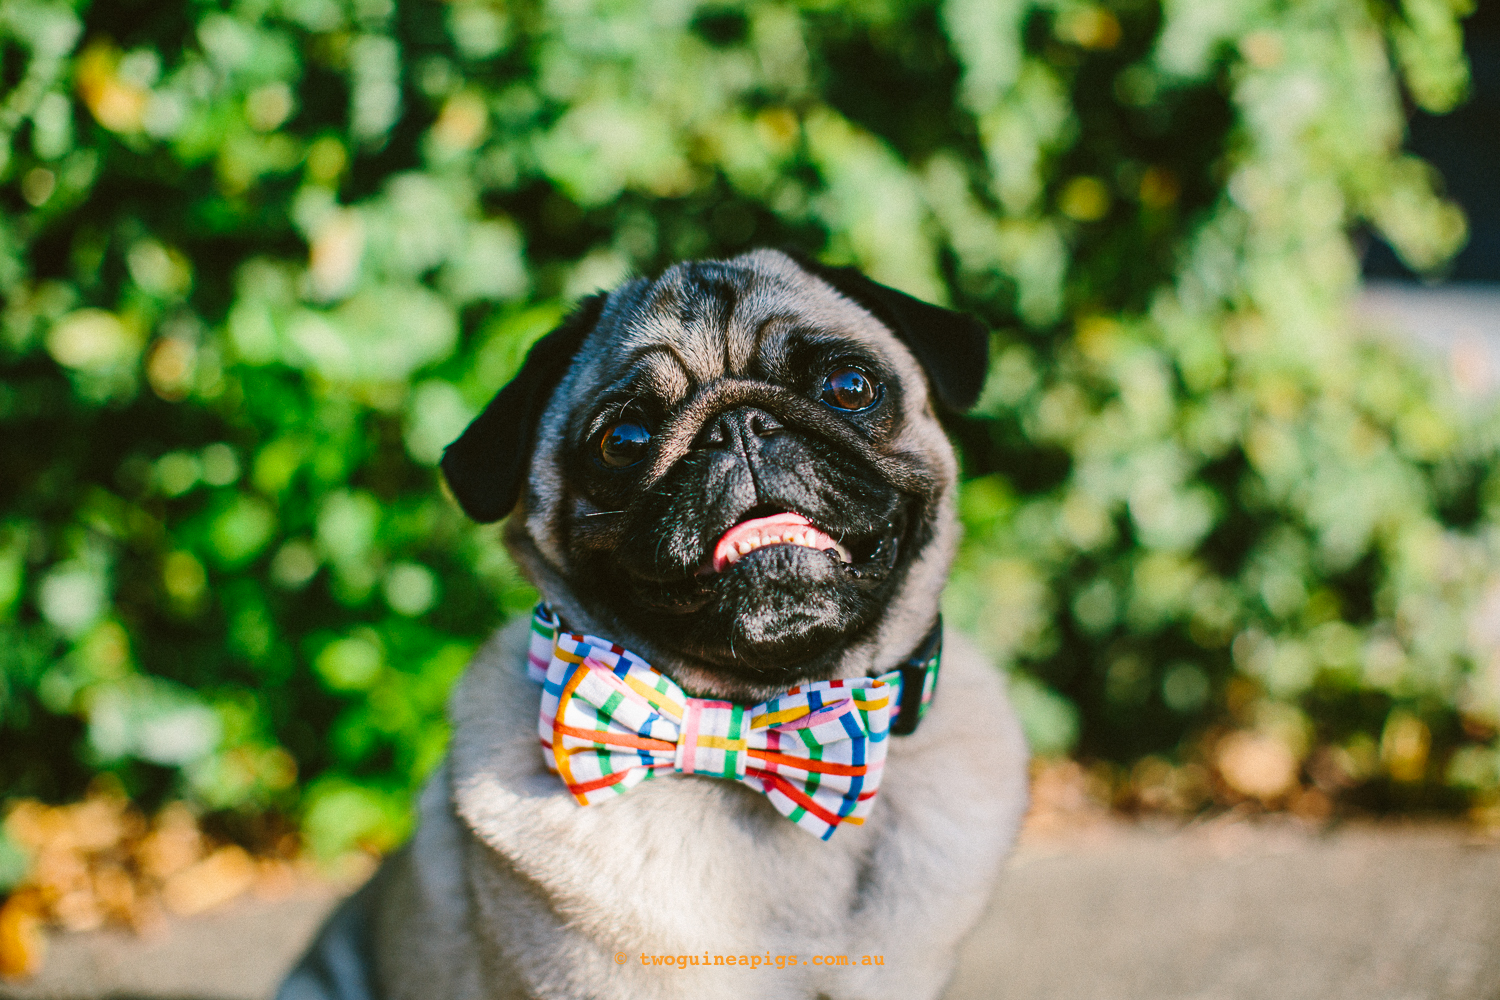 twoguineapigs_pet_photography_ohjaffa_2016_mardi_gras_rainbow_grid_bowtie_pug